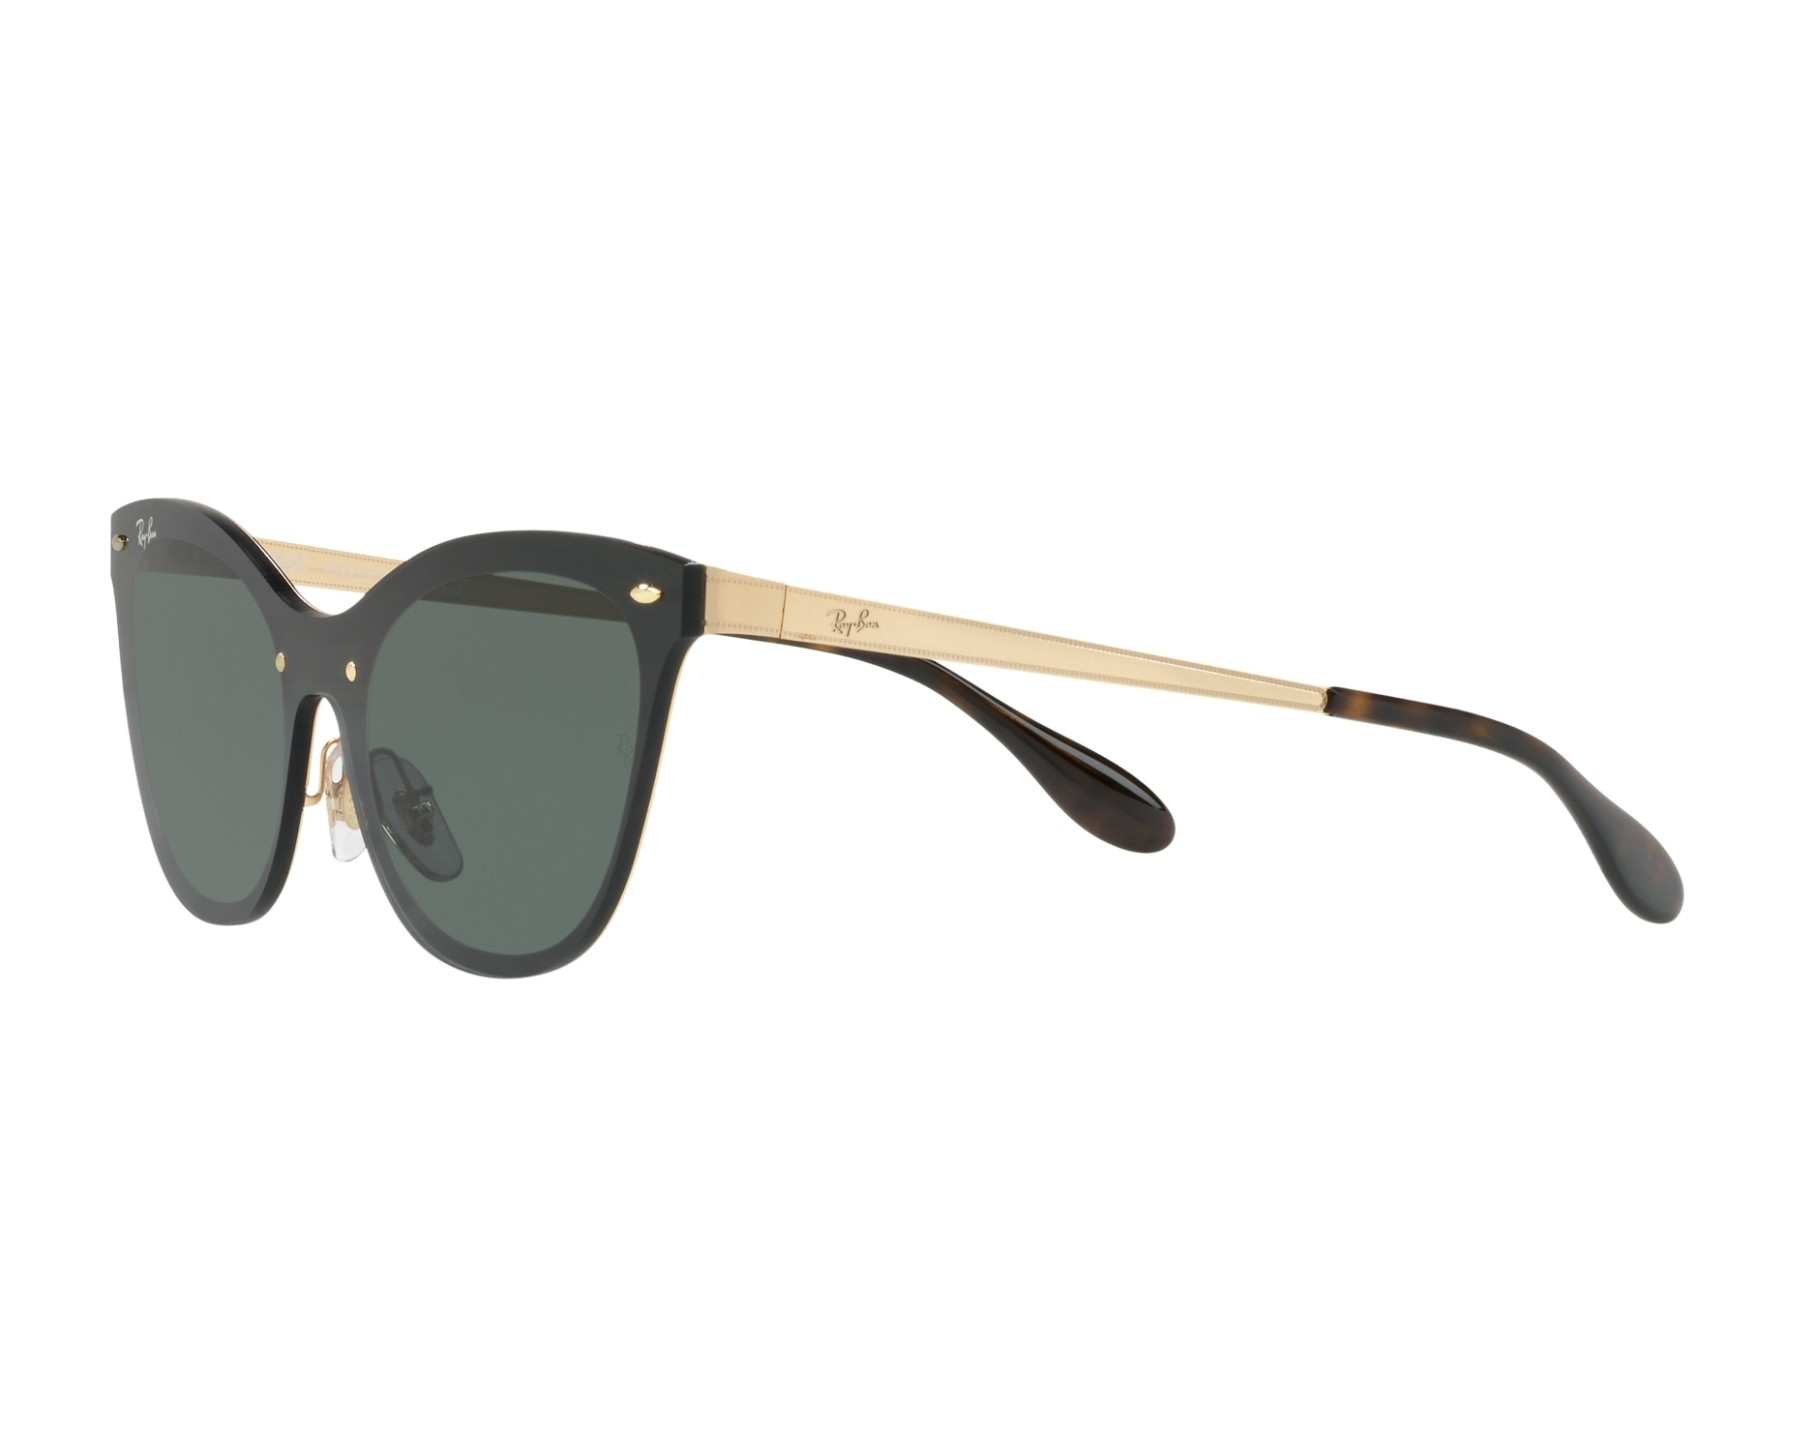 88ded092cfe Sunglasses Ray-Ban RB-3580-N 043 71 - Gold 360 degree